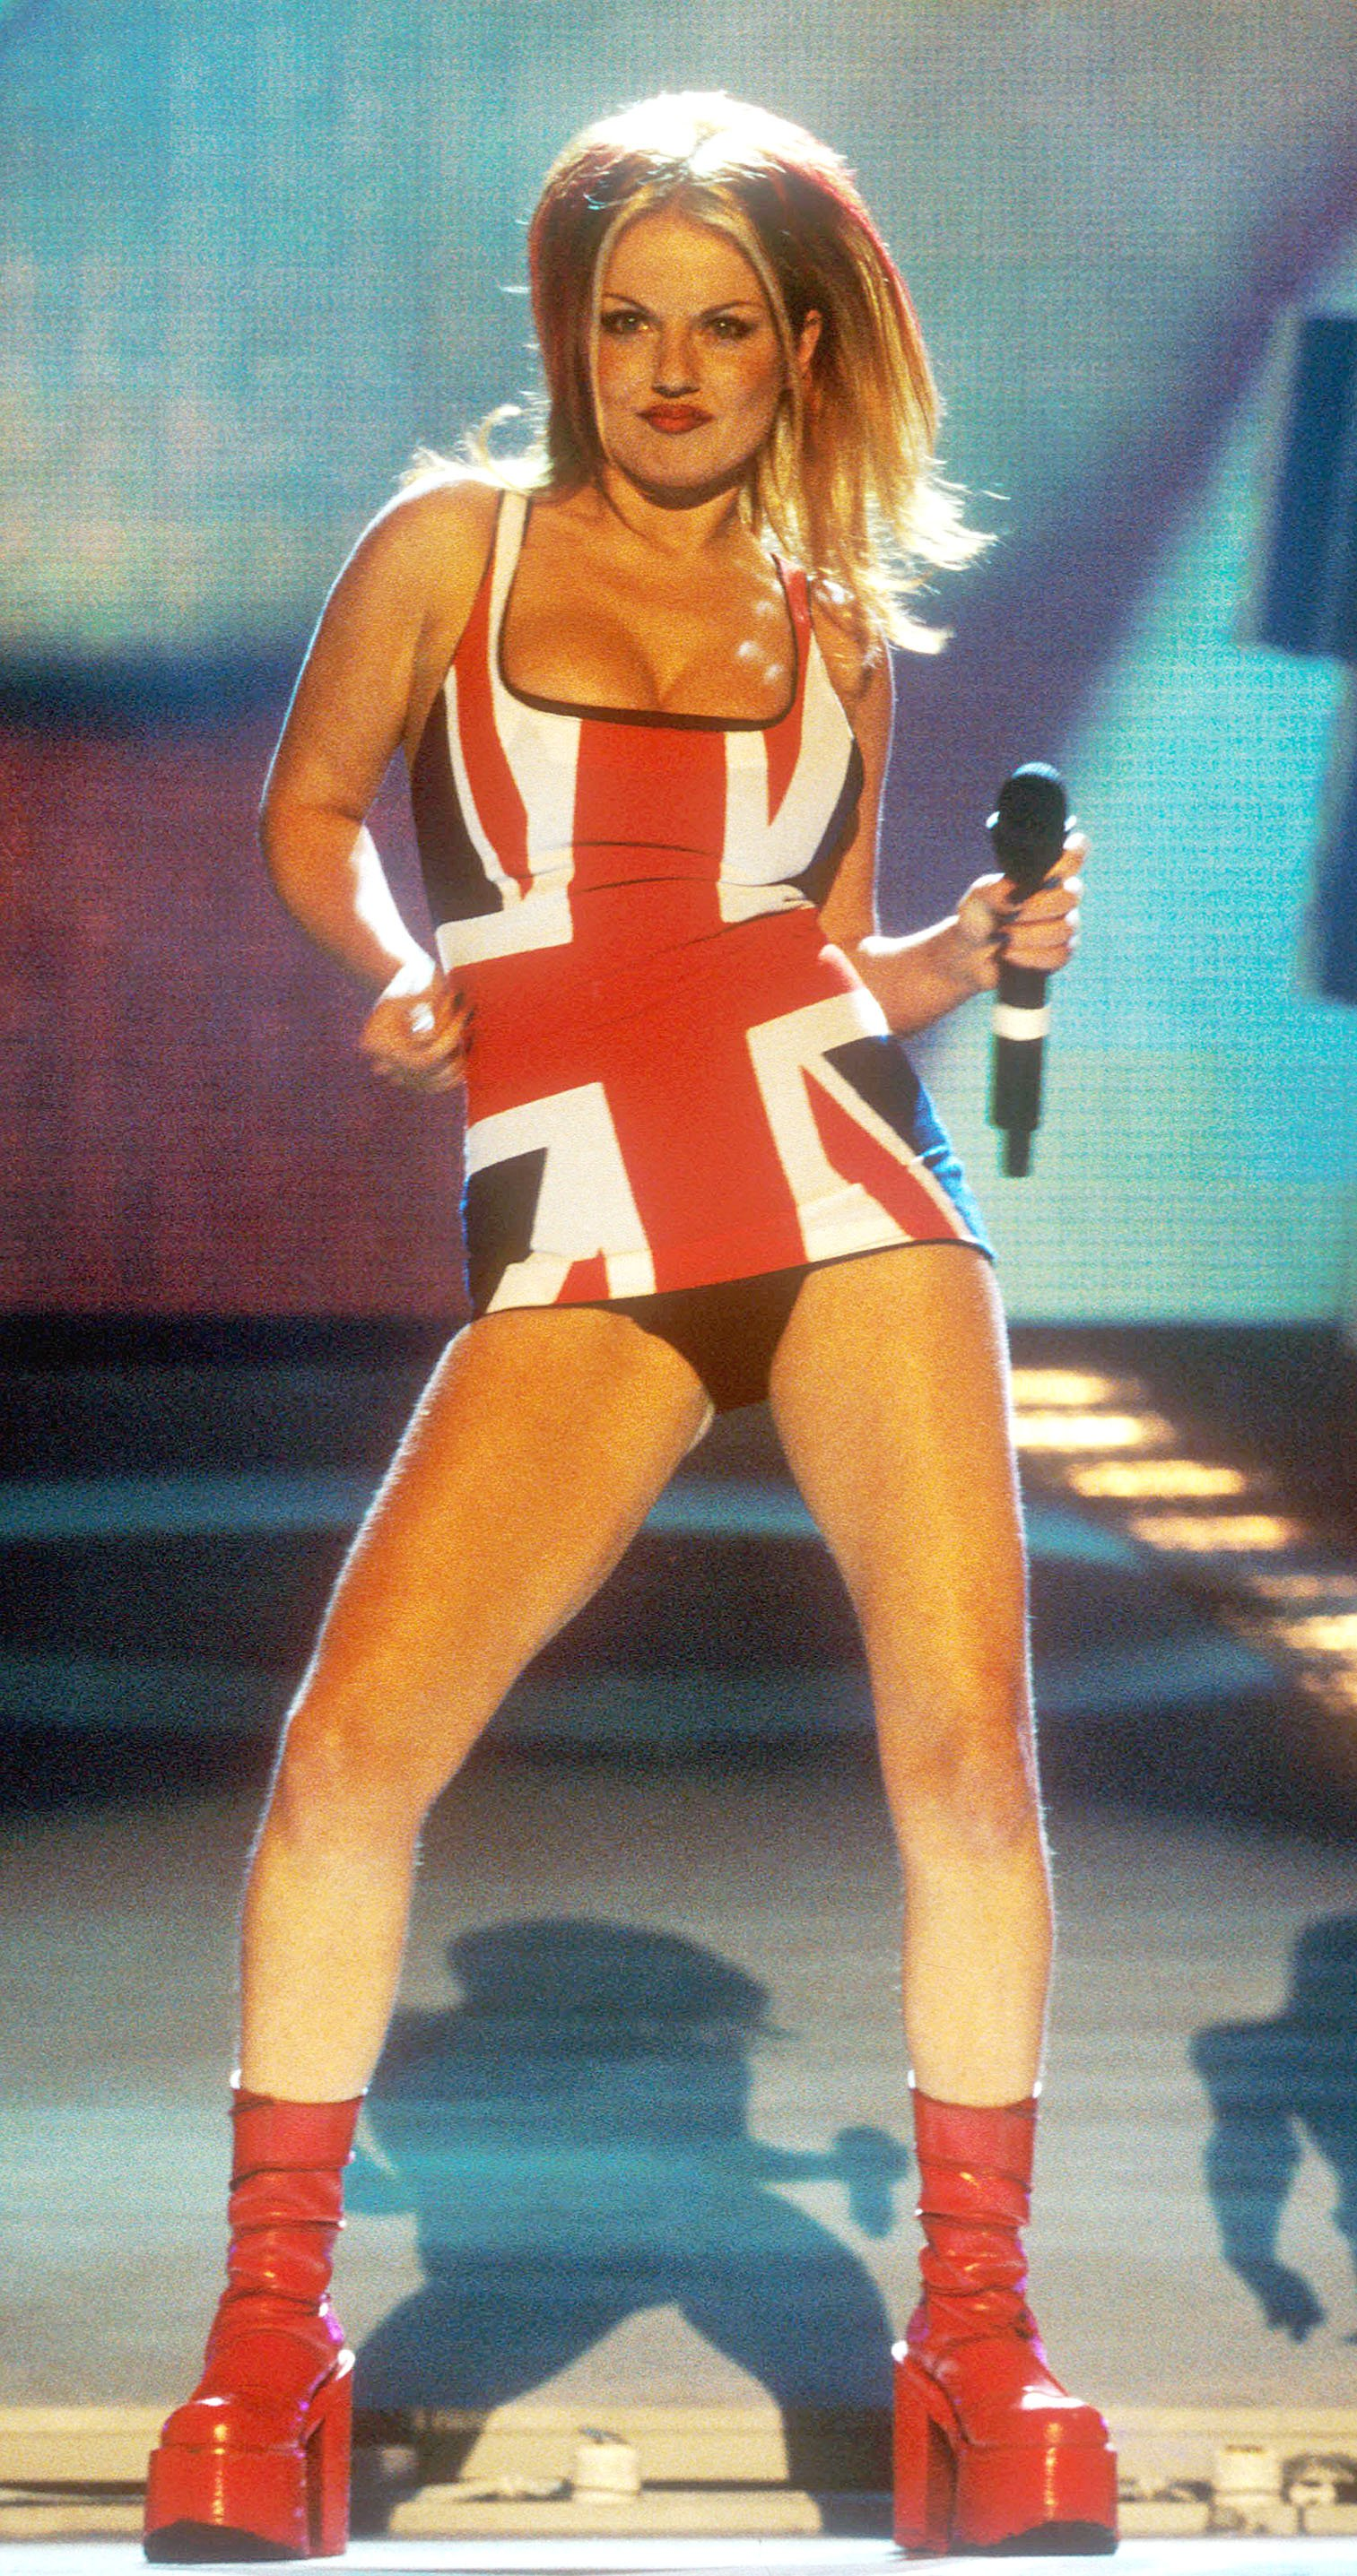 London. Geri Halliwell performs at the Brit Awards. Date: 1997. Ref: LMK25-55-070405 Picture by Trevor Moore/Landmark Media, Image: 97252984, License: Rights-managed, Restrictions: WORLD WIDE RIGHTS, Model Release: no, Credit line: Profimedia, Newscom